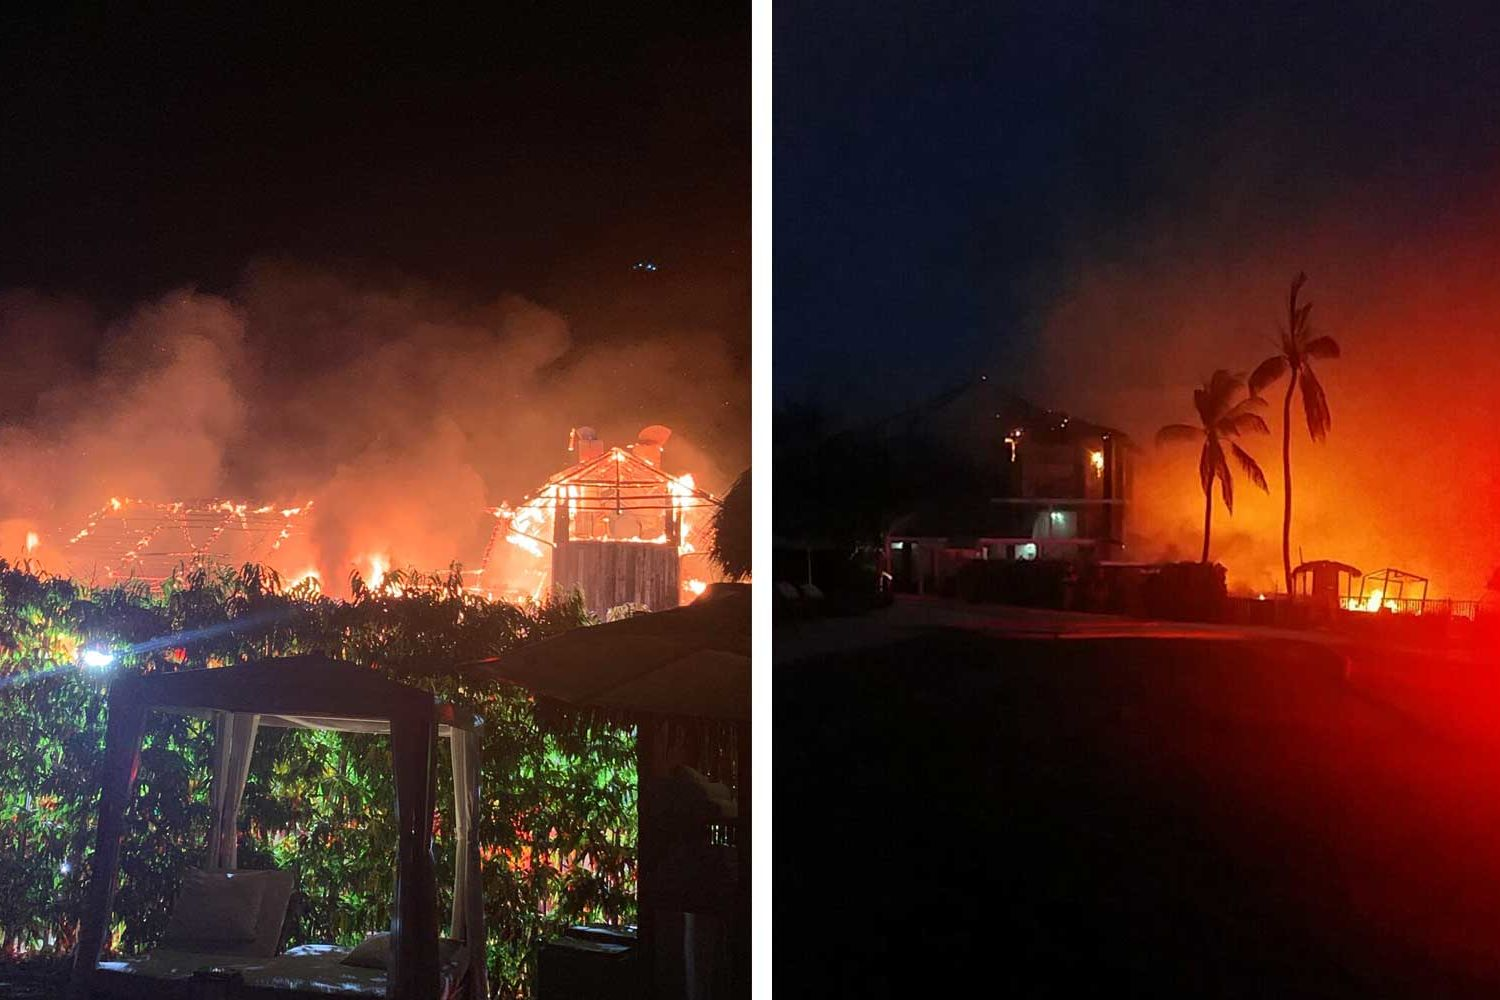 Massive Fire Reported at First All-inclusive Resort in the Florida Keys